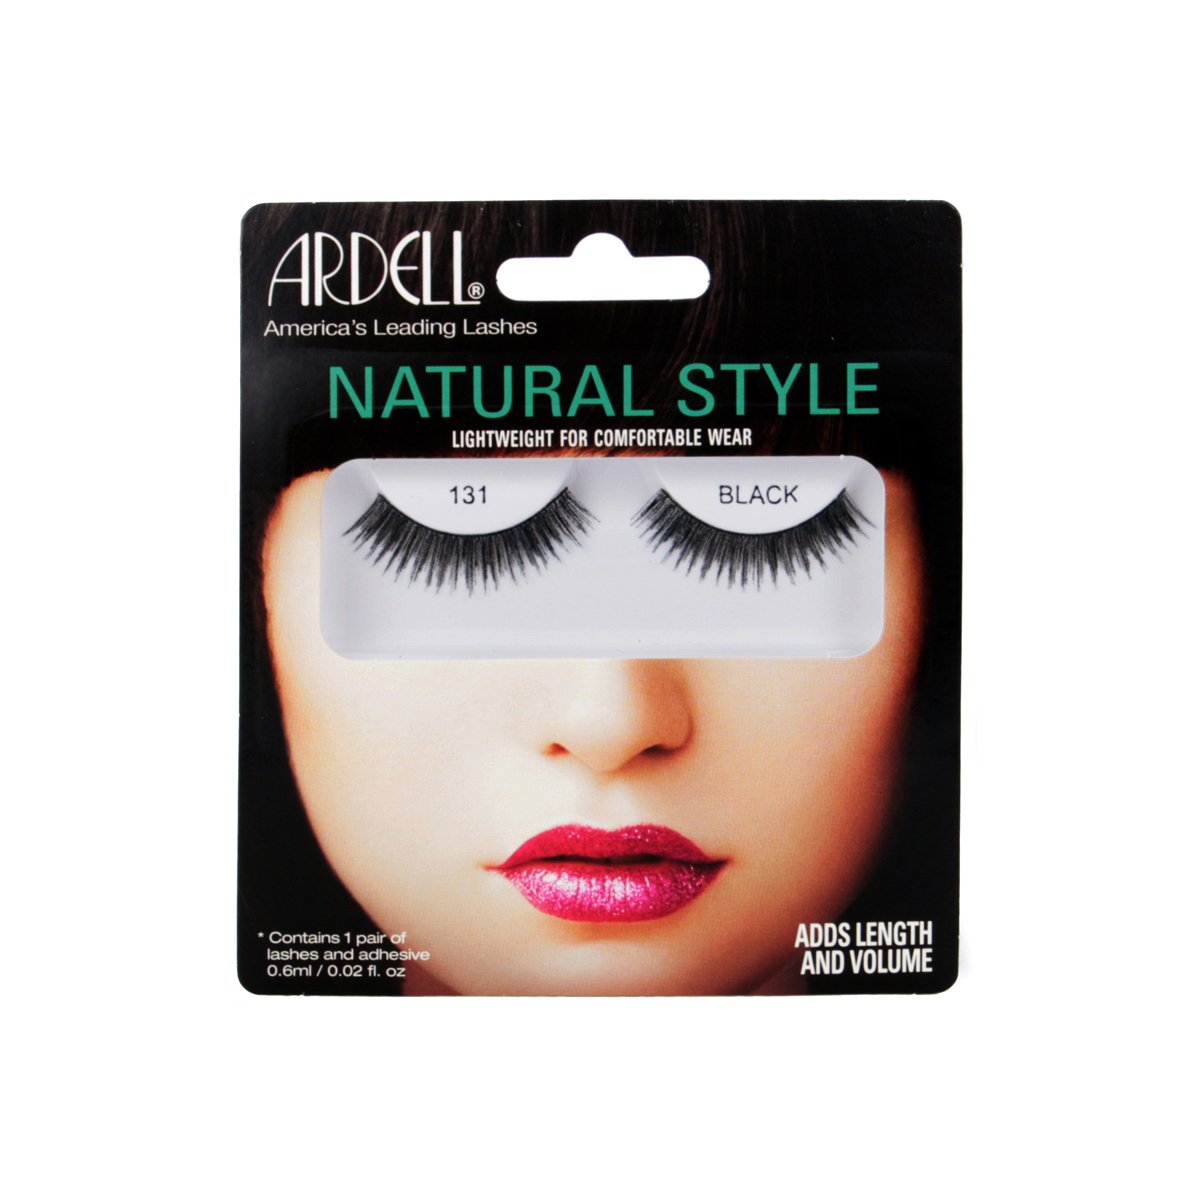 Ardell, Ciglia finte, effetto naturale, N. 110 Ardell Italy AII68123B